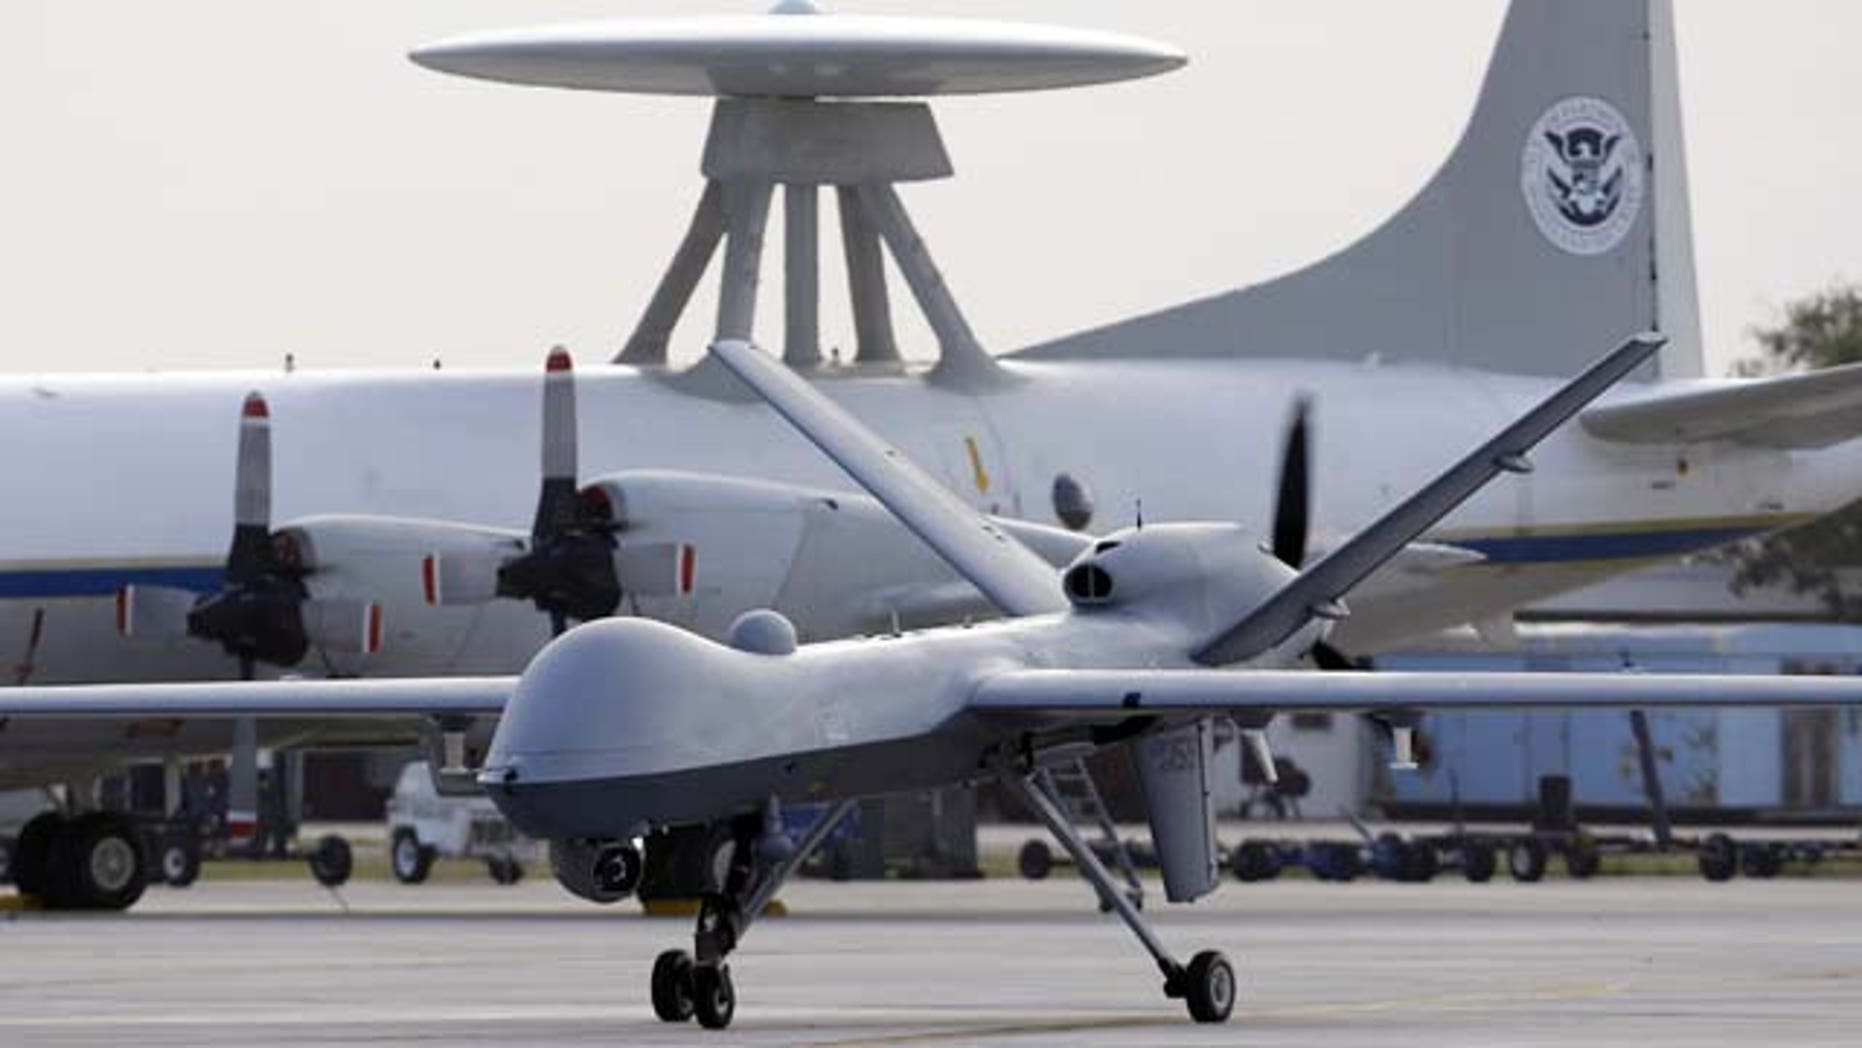 In this Nov. 8, 2011 file photo, a Predator B unmanned aircraft taxis at the Naval Air Station in Corpus Christi, Texas. (AP Photo)